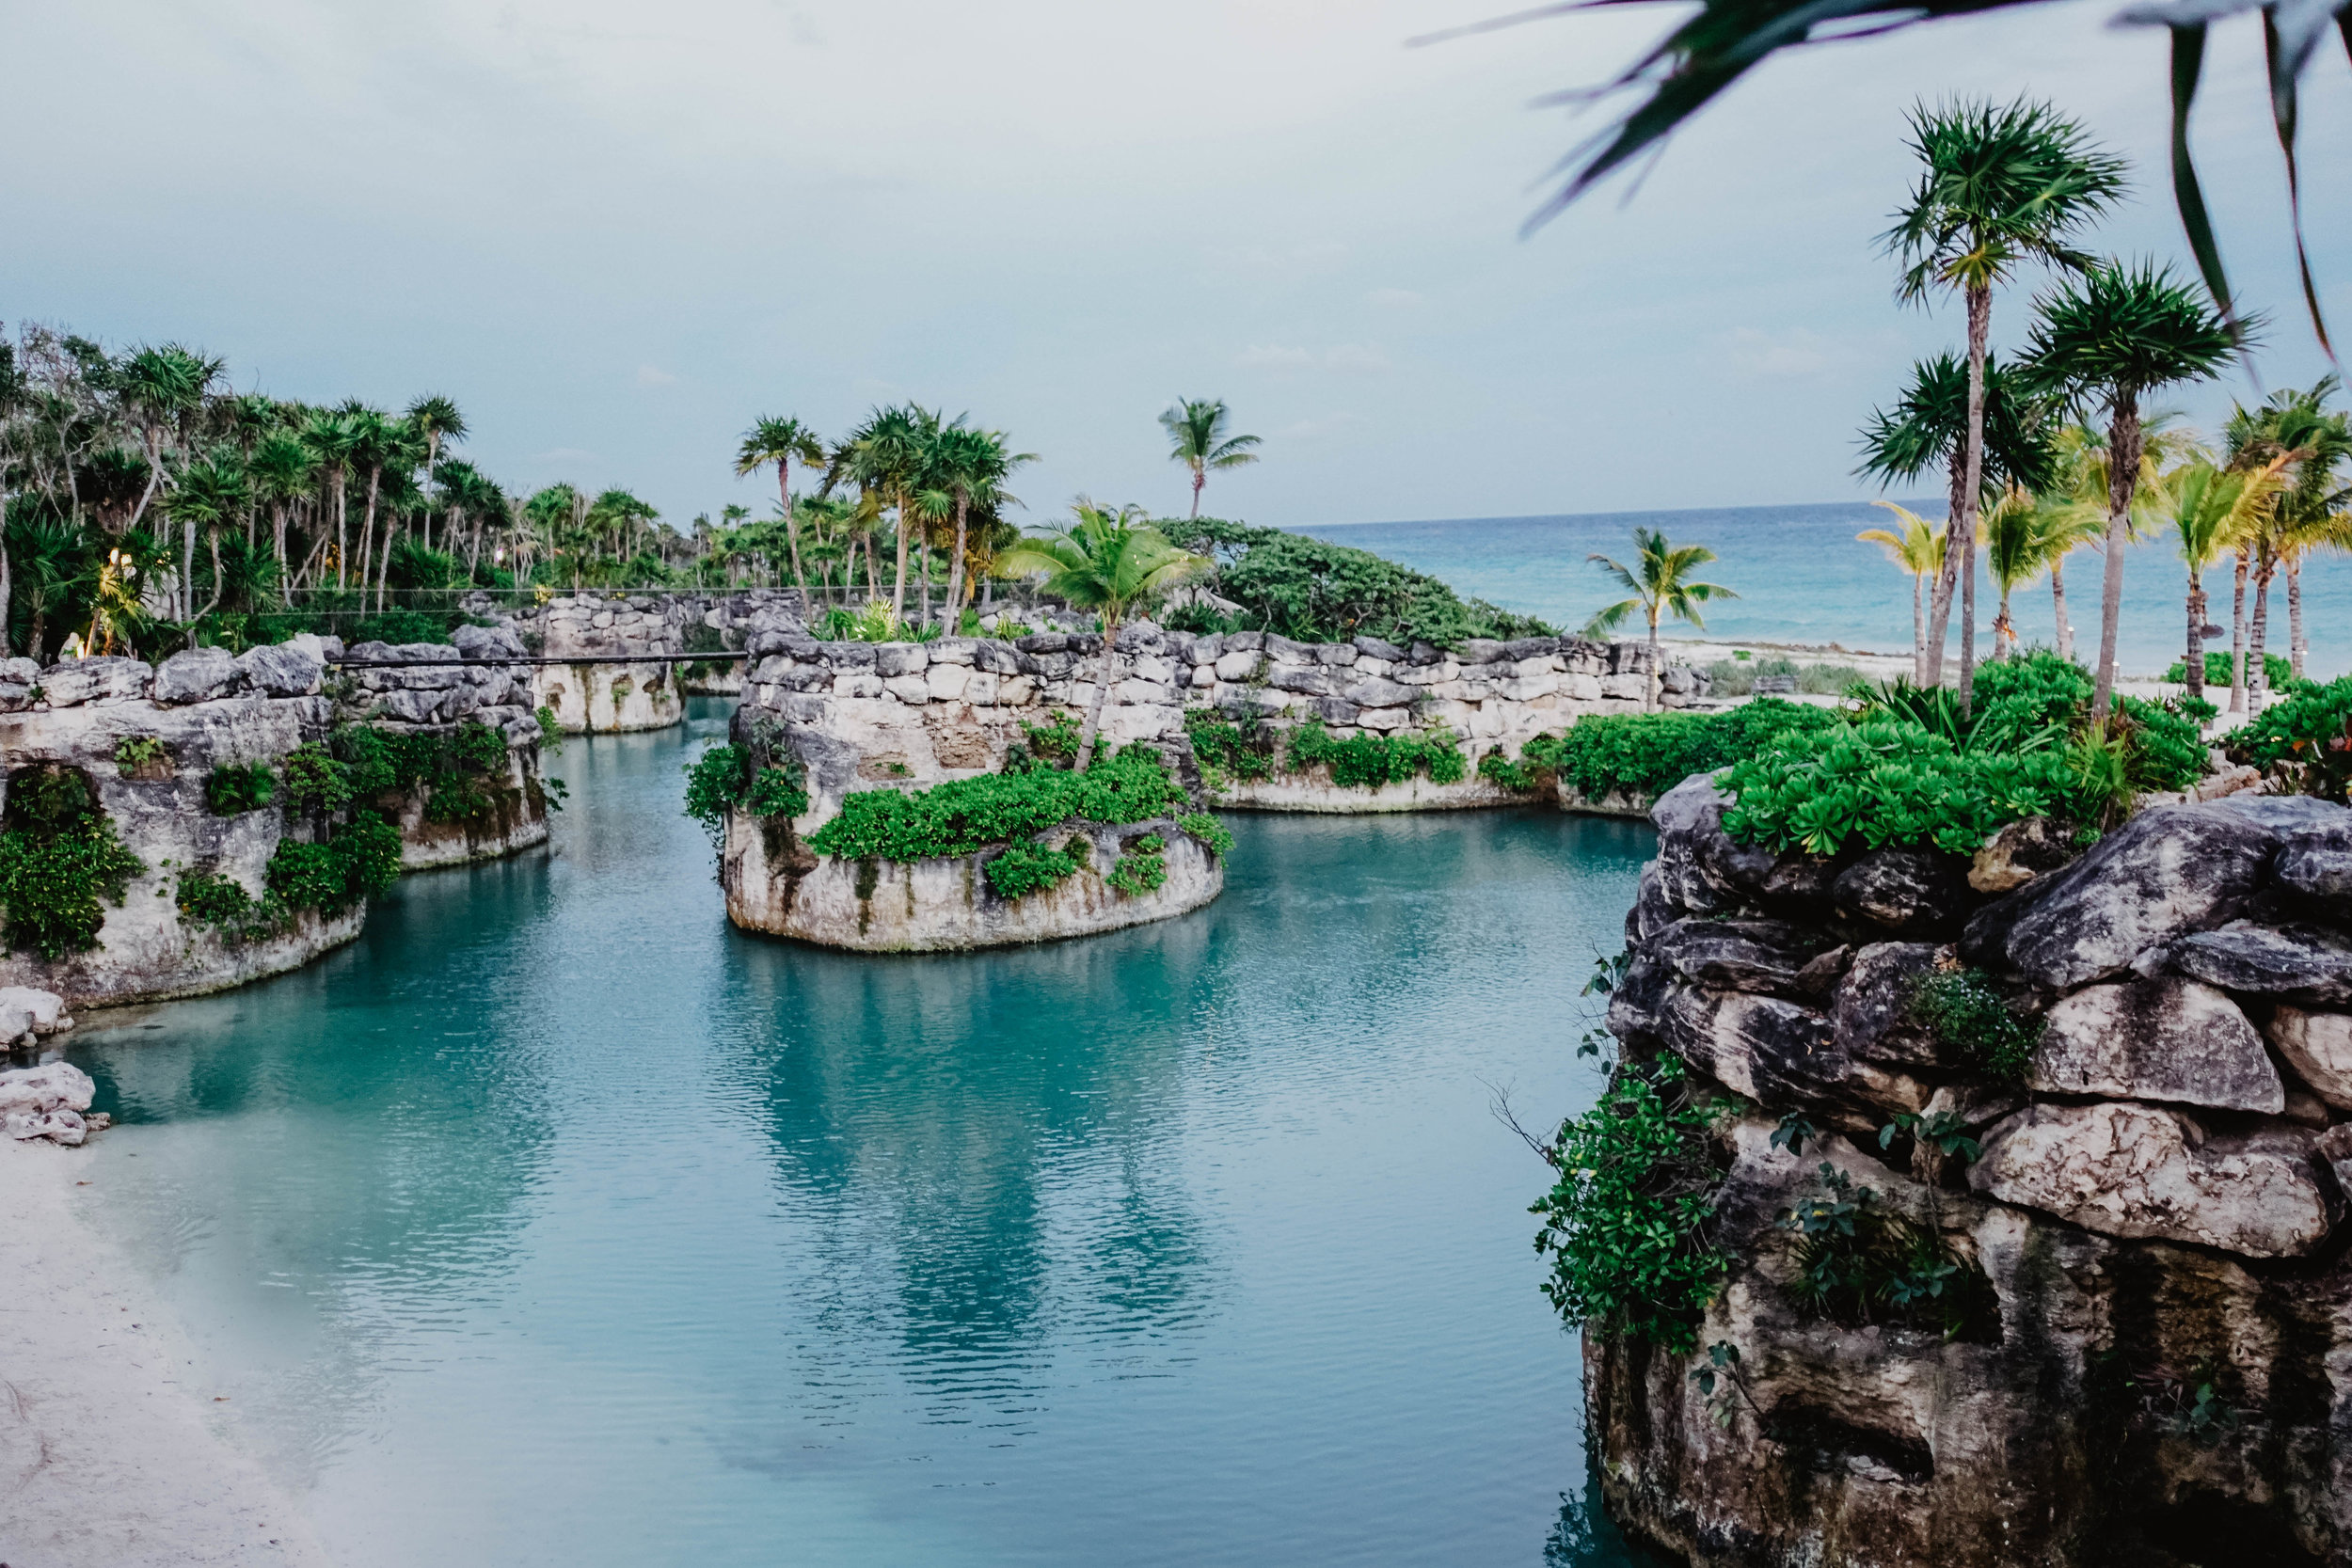 The beach front at Hotel Xcaret Mexico.